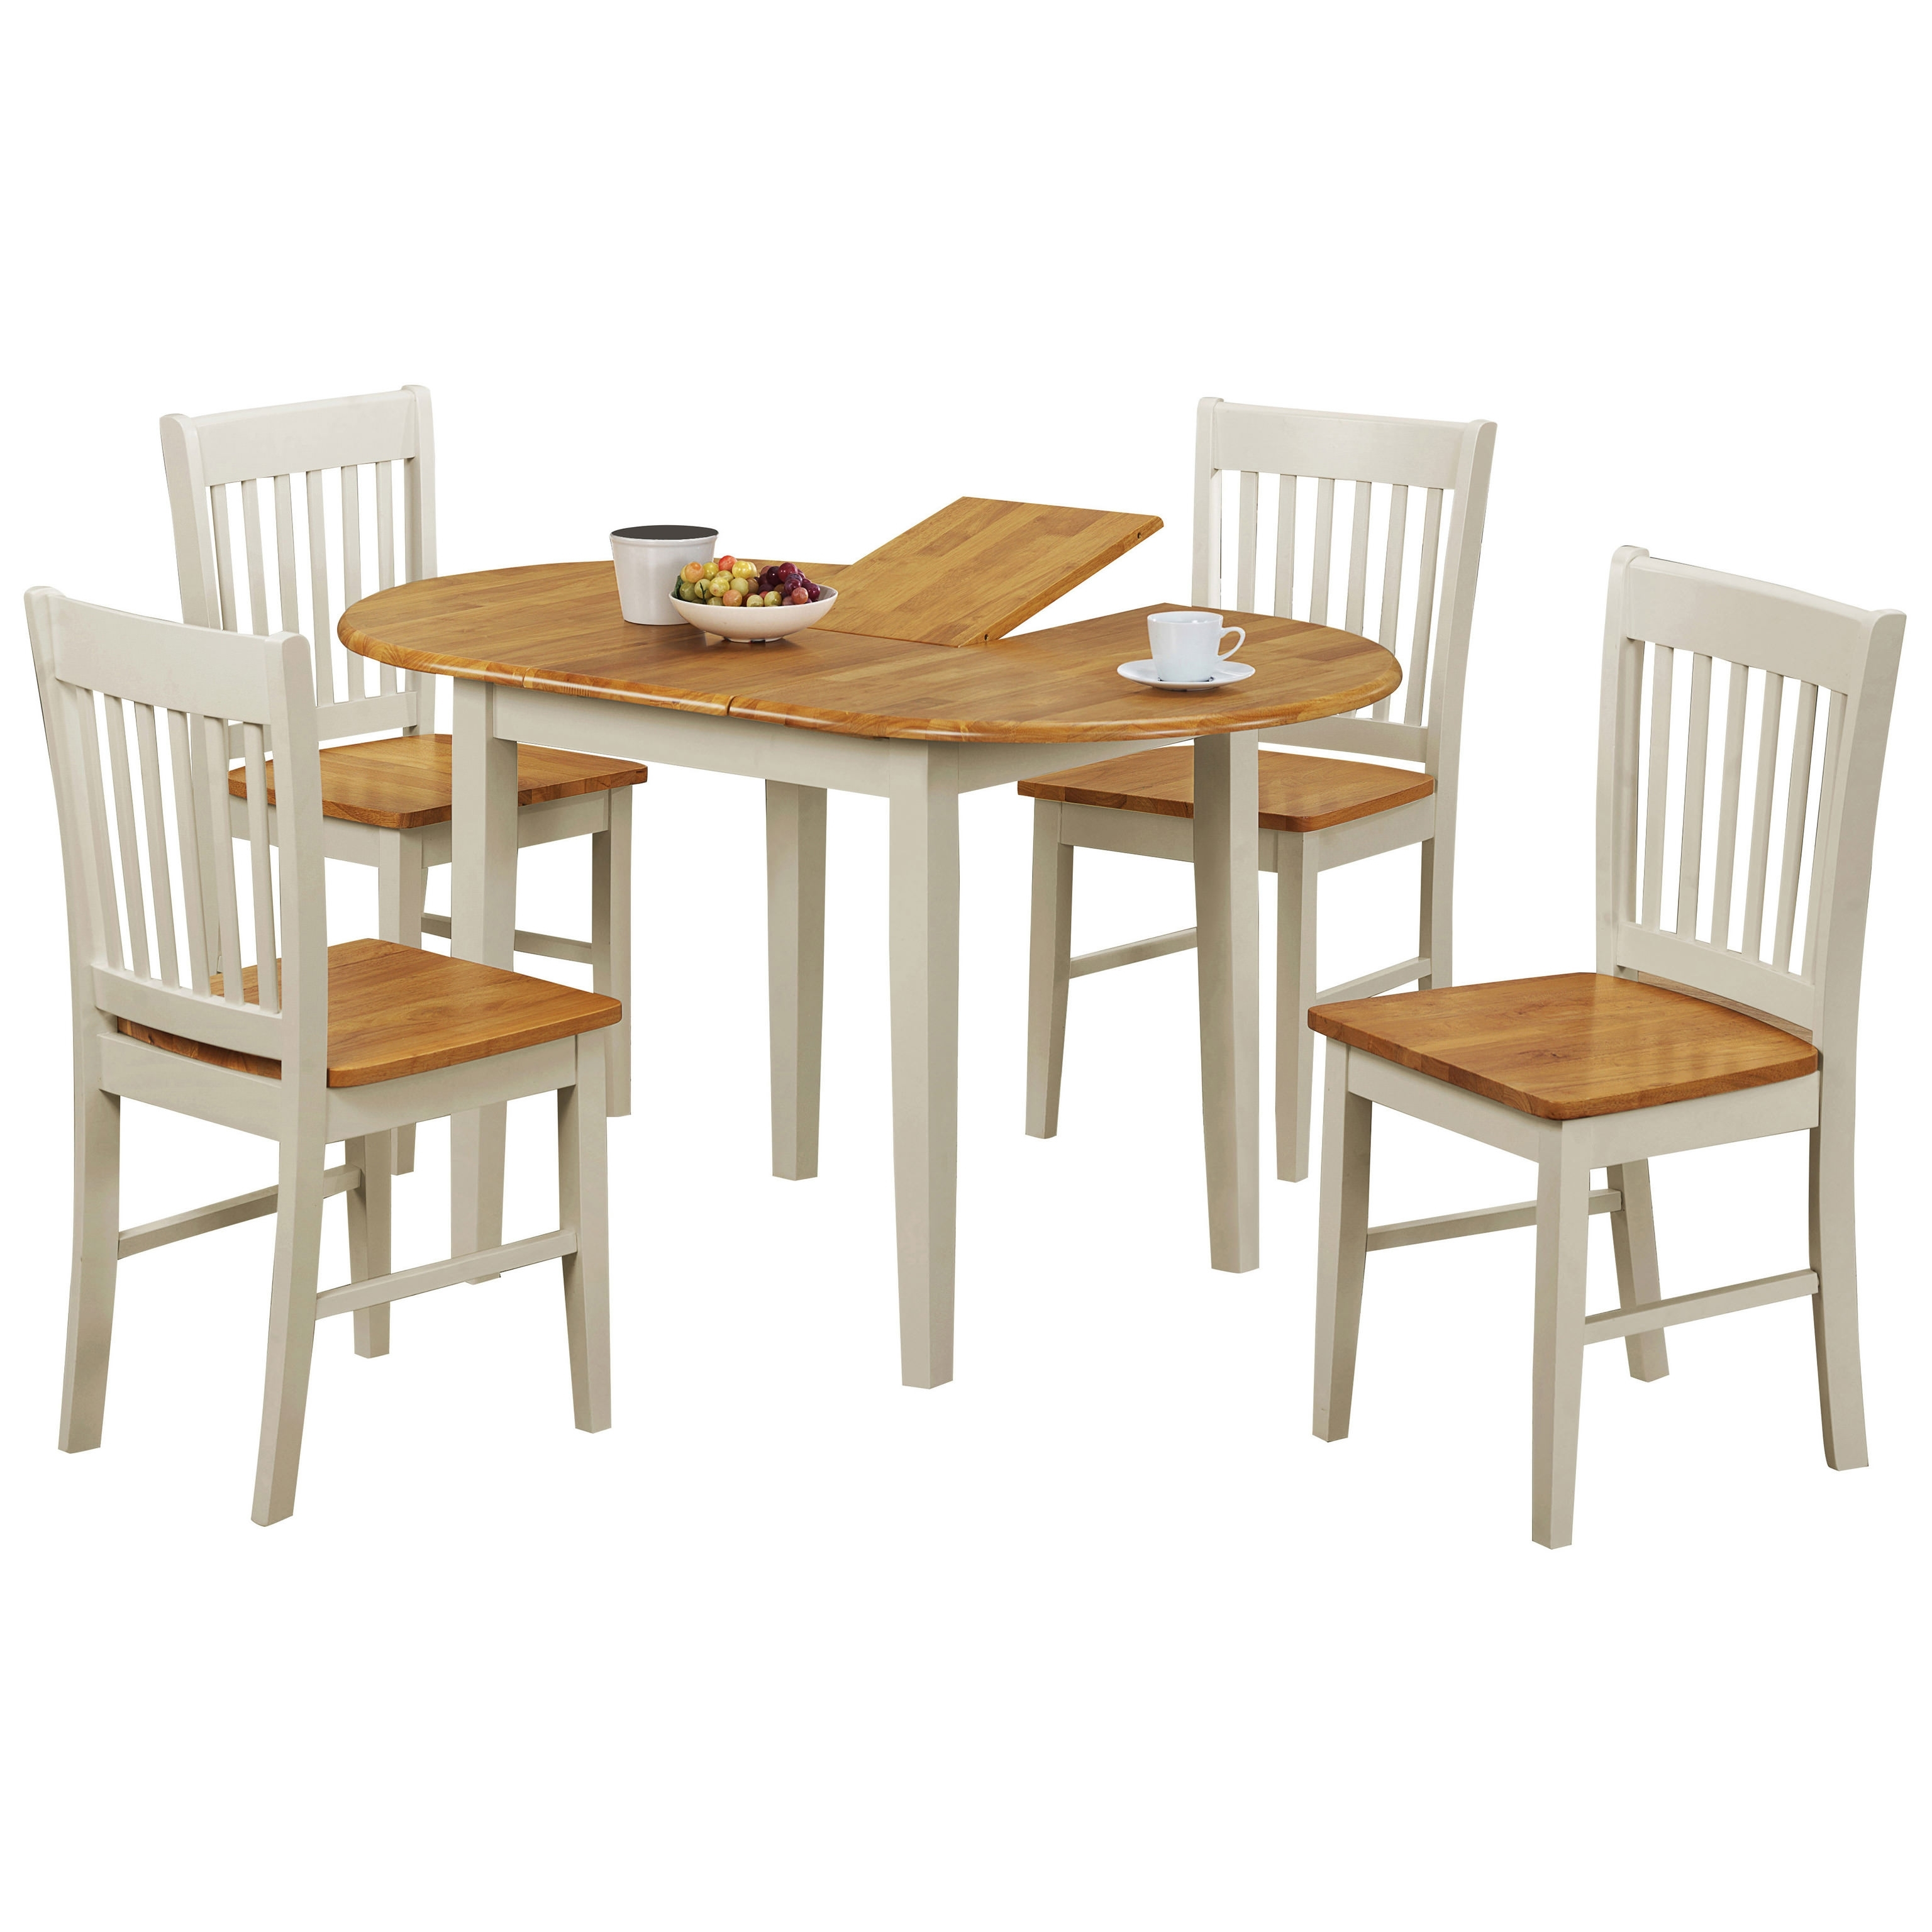 Oak & White Oval Extending Extendable Dining Table And Chair Set Regarding Most Current Oval Oak Dining Tables And Chairs (View 8 of 25)